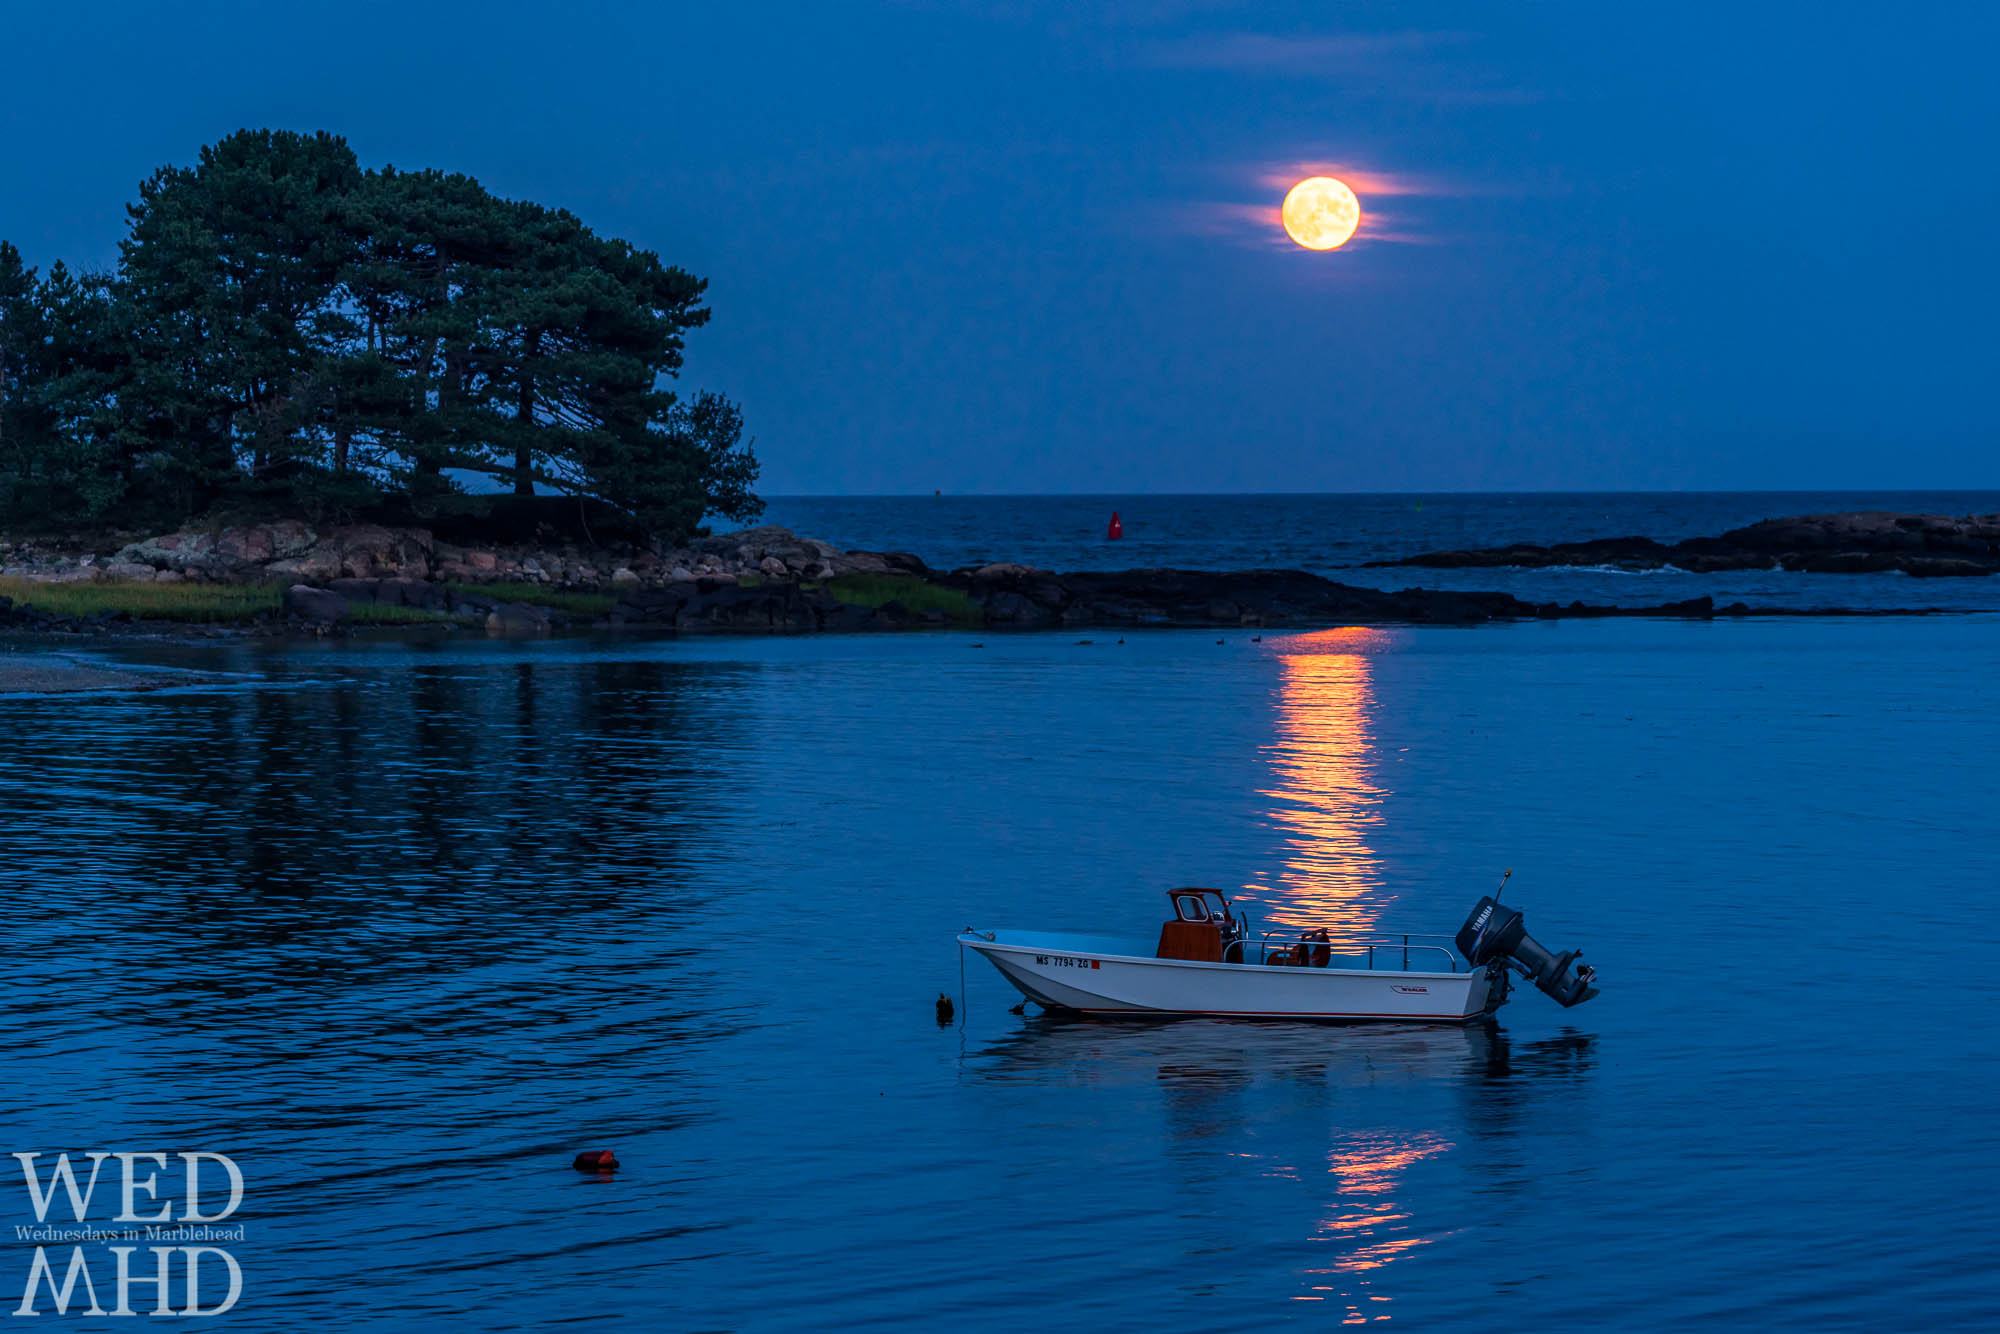 A whaler is caught in the wake of the full moon rising over Brown's Island